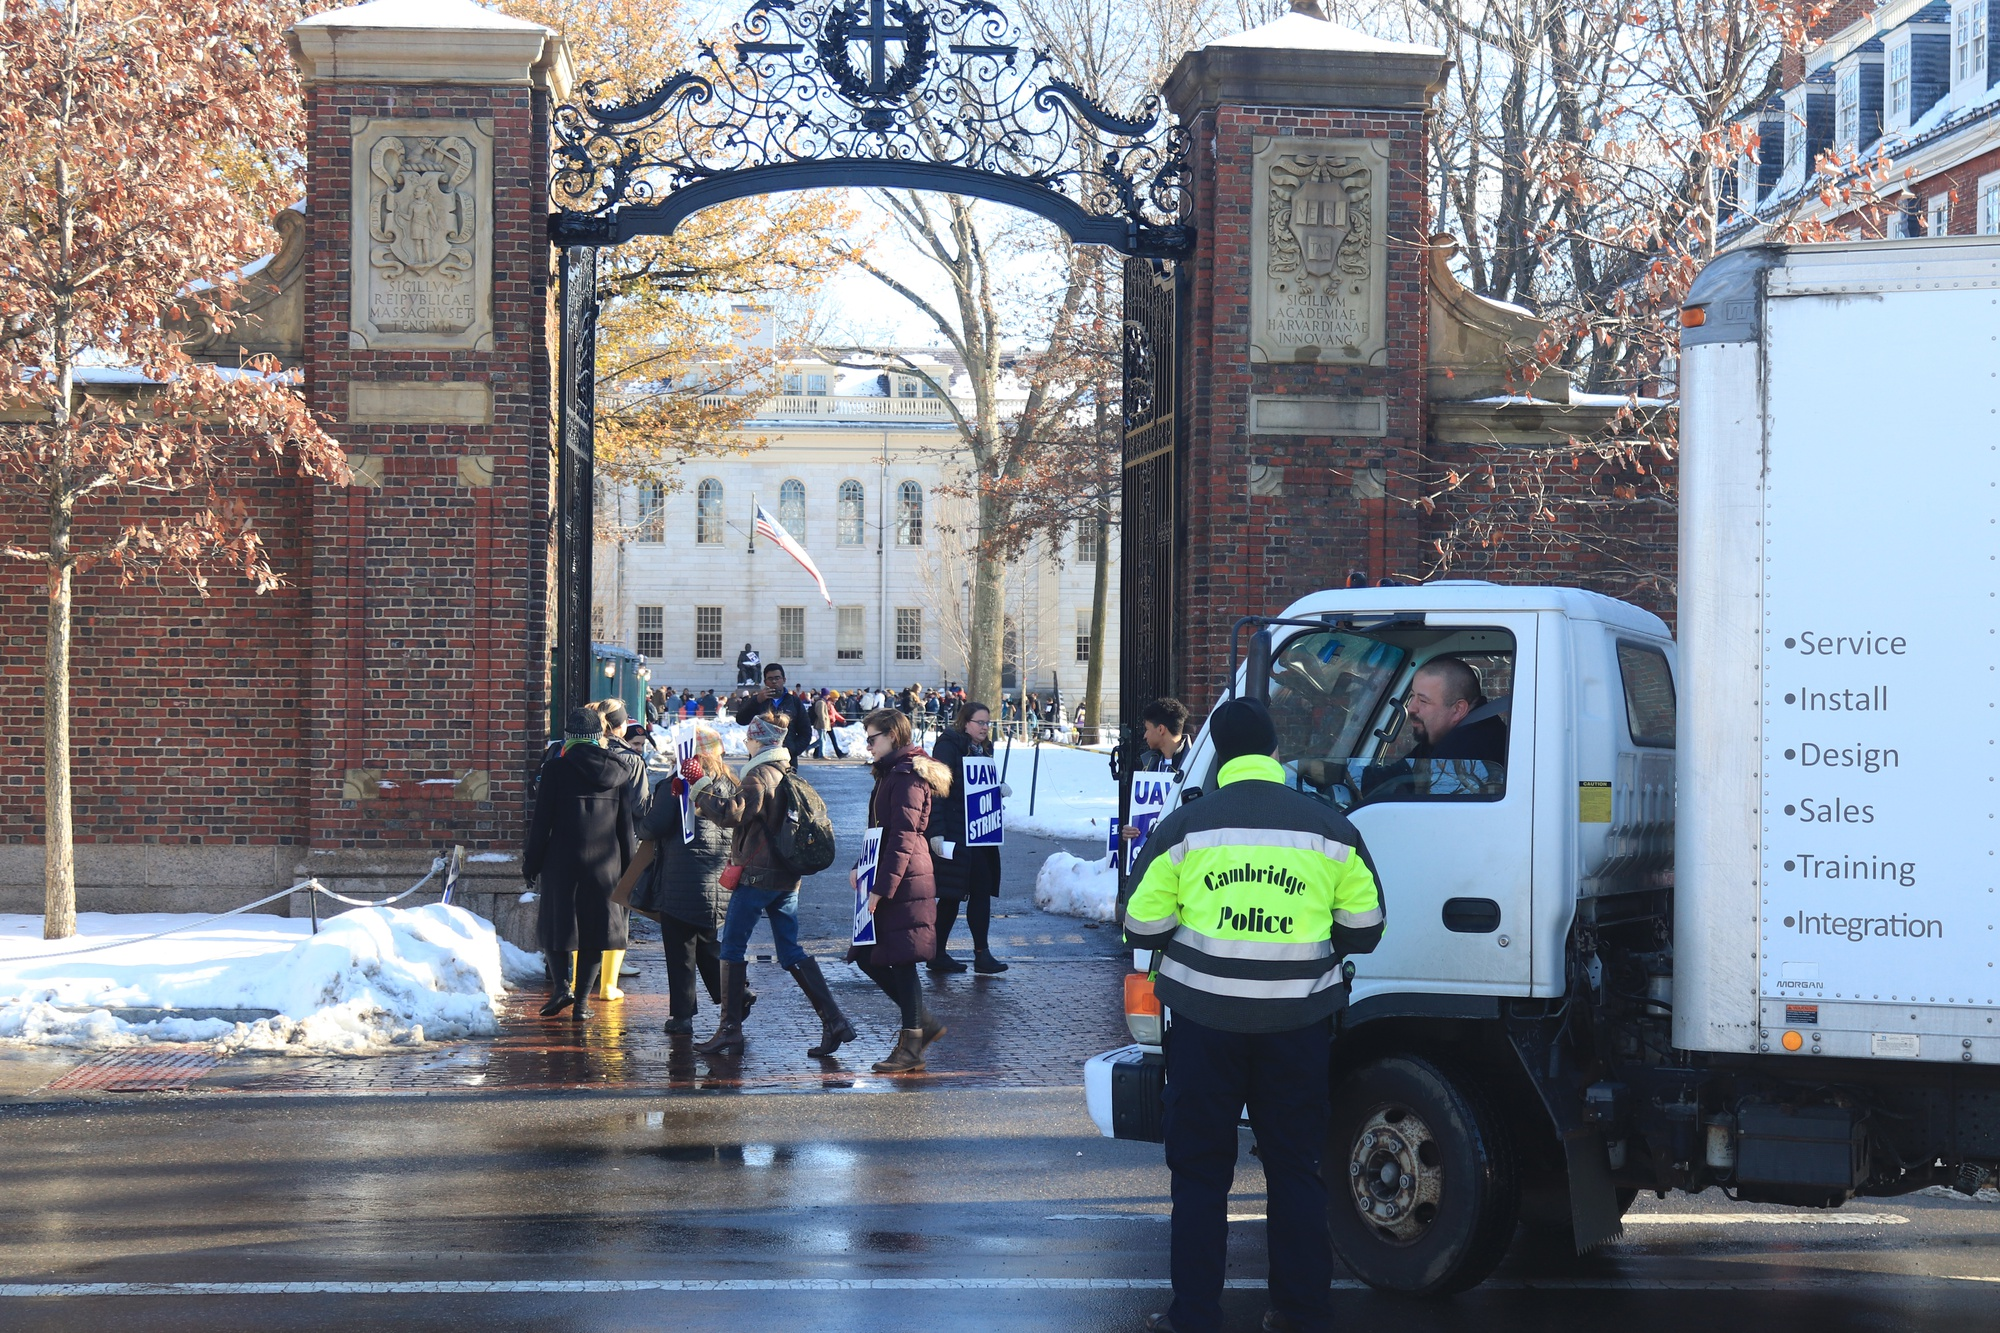 Picketers blocked delivery and mail trucks from entering Johnston Gate of Harvard Yard.